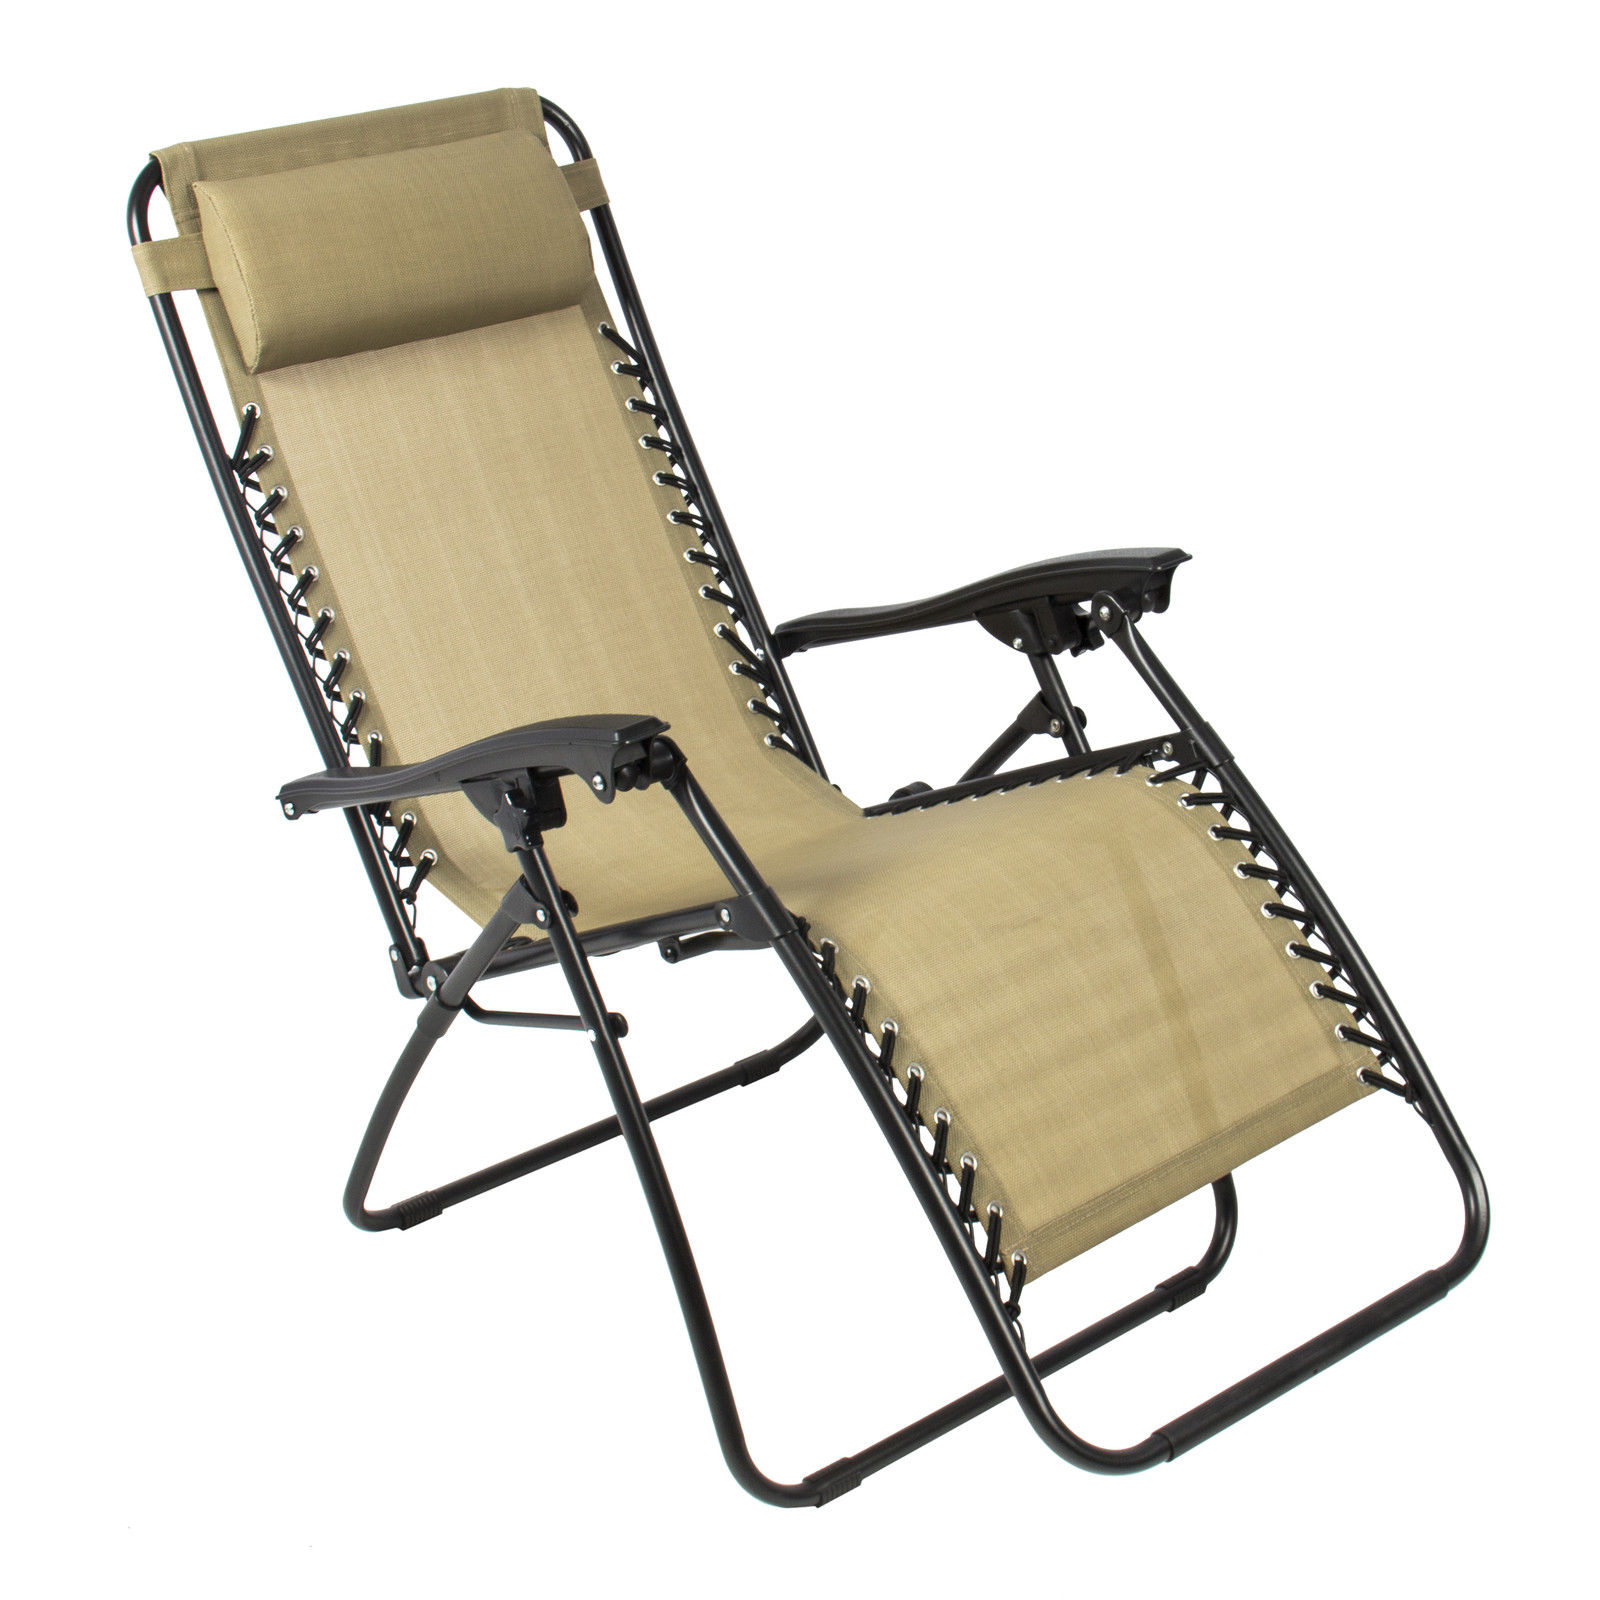 yankees folding chair luxury office chairs hot 28 50 per zero gravity 43 free shipping